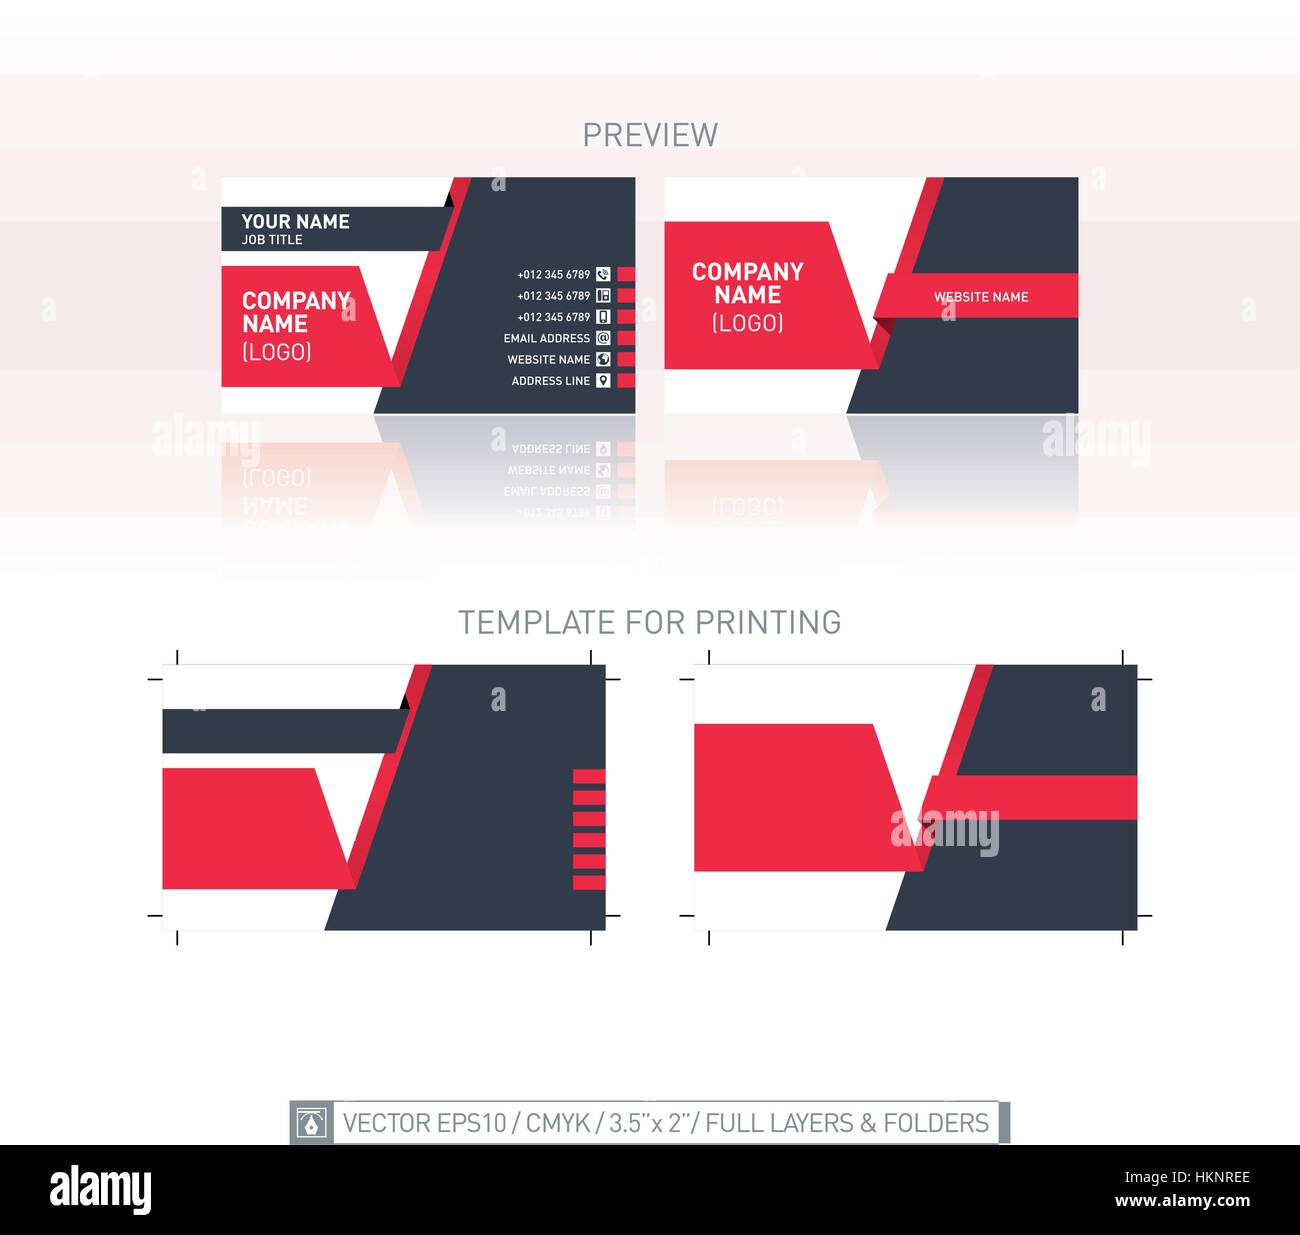 Vector business card template one to one dimensions for printing vector business card template one to one dimensions for printing isolated modern vector background full layers and folders cheaphphosting Gallery